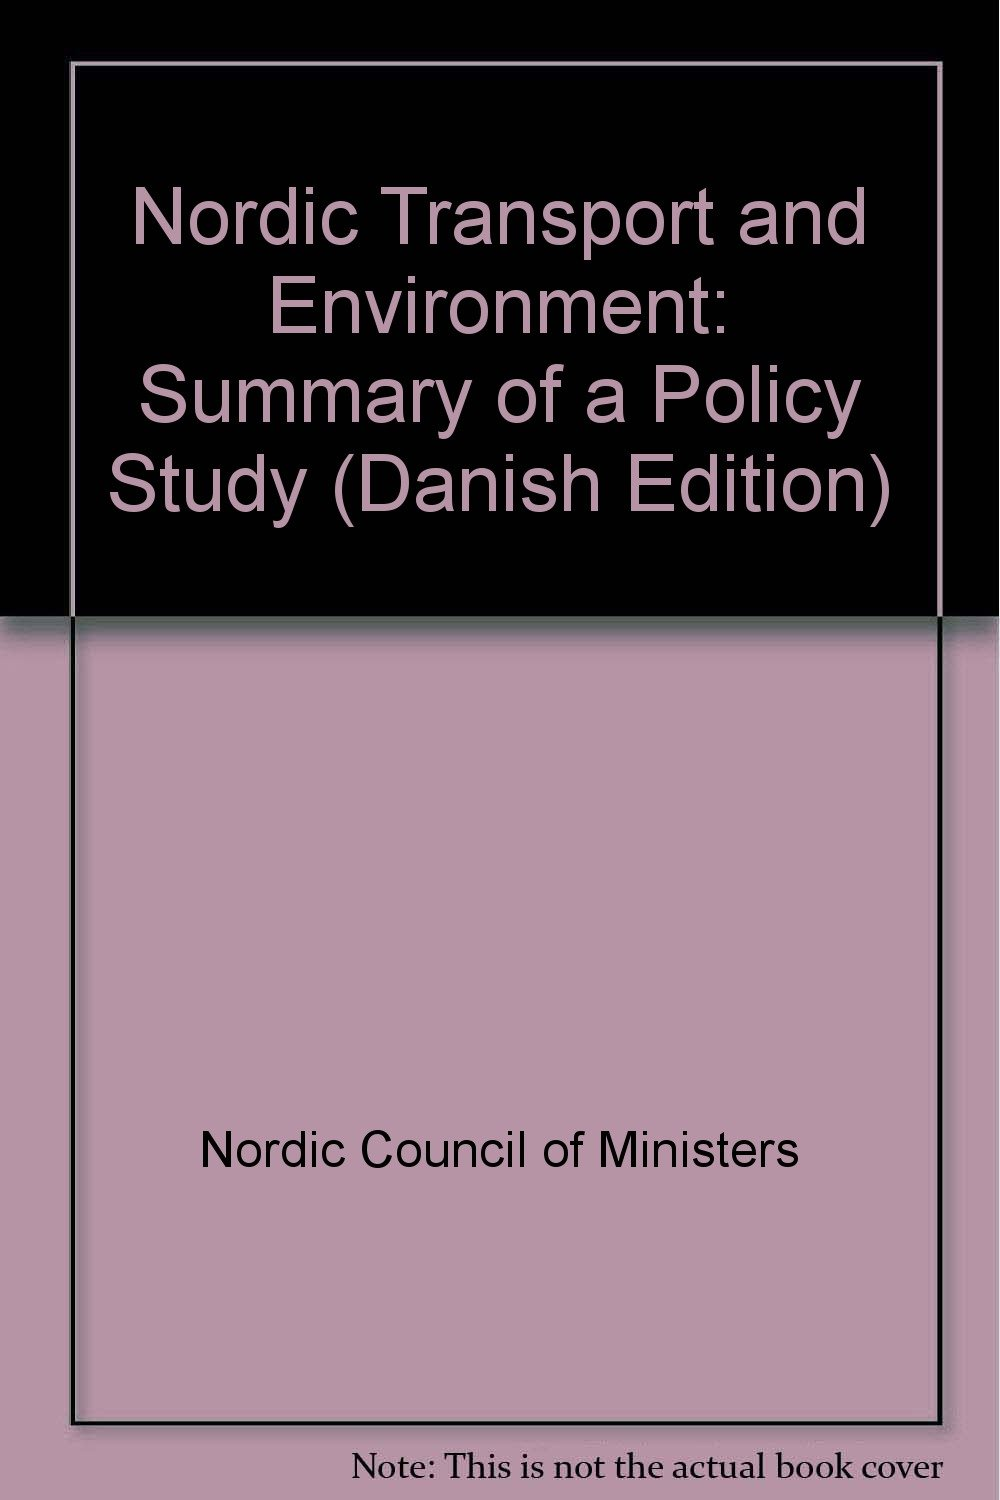 Nordic Transport and Environment: Summary of a Policy Study (Danish Edition) by Nordic Council of Ministers